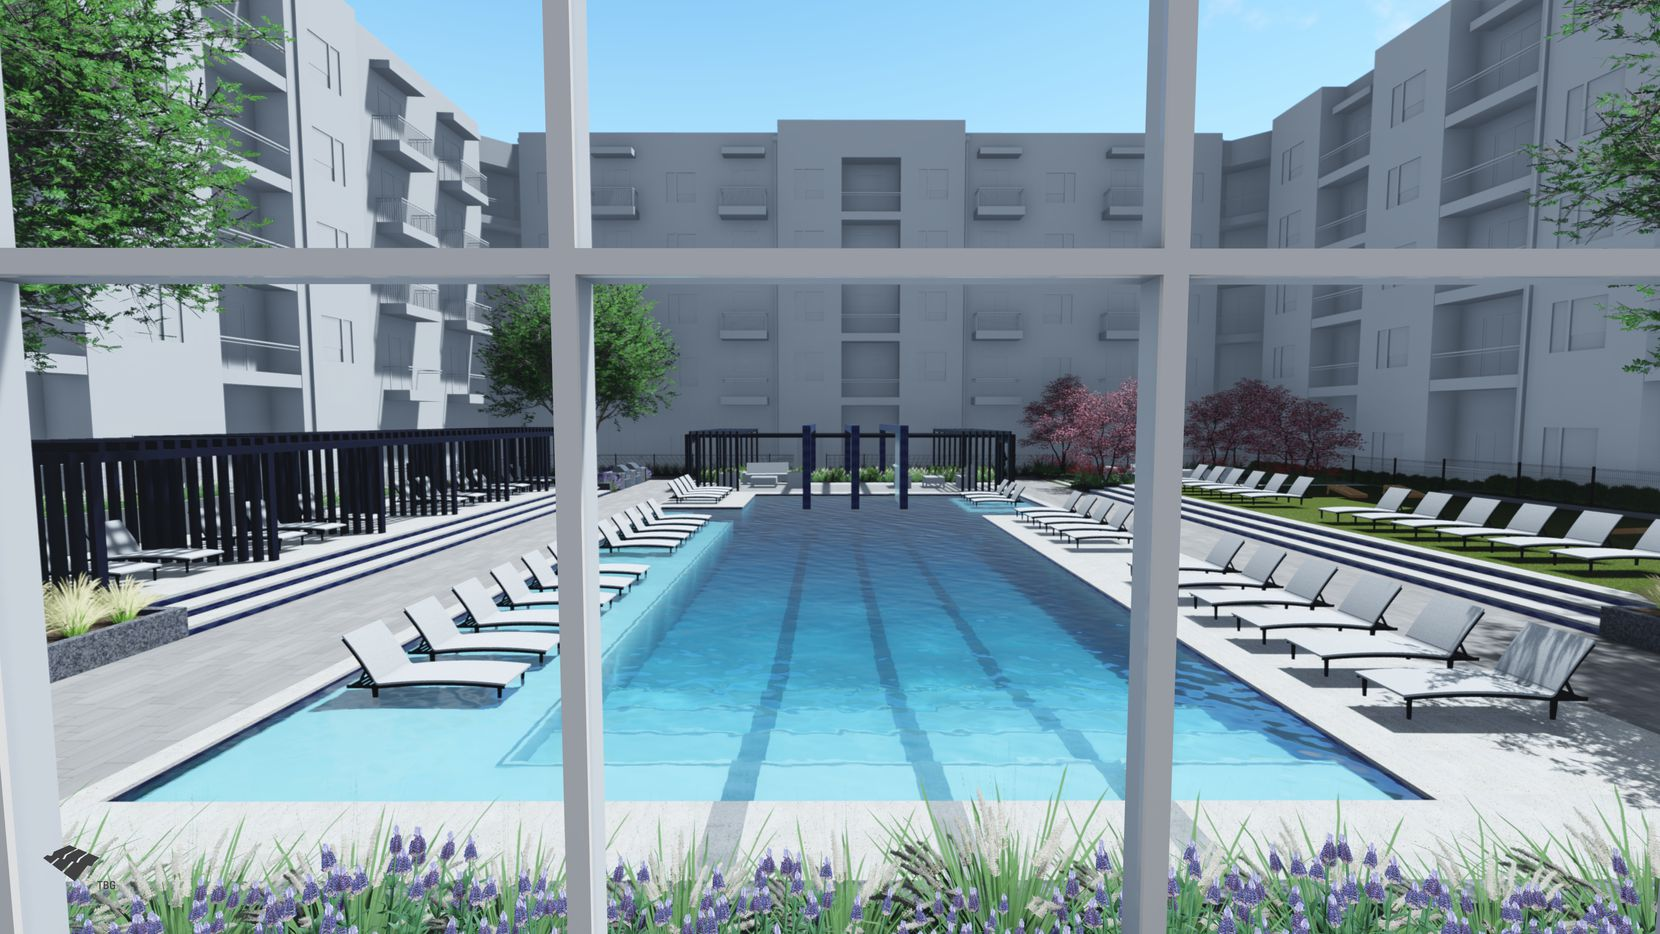 Leon Capital Group's Ross Avenue apartment development is on the site of the old Dallas school district headquarters.